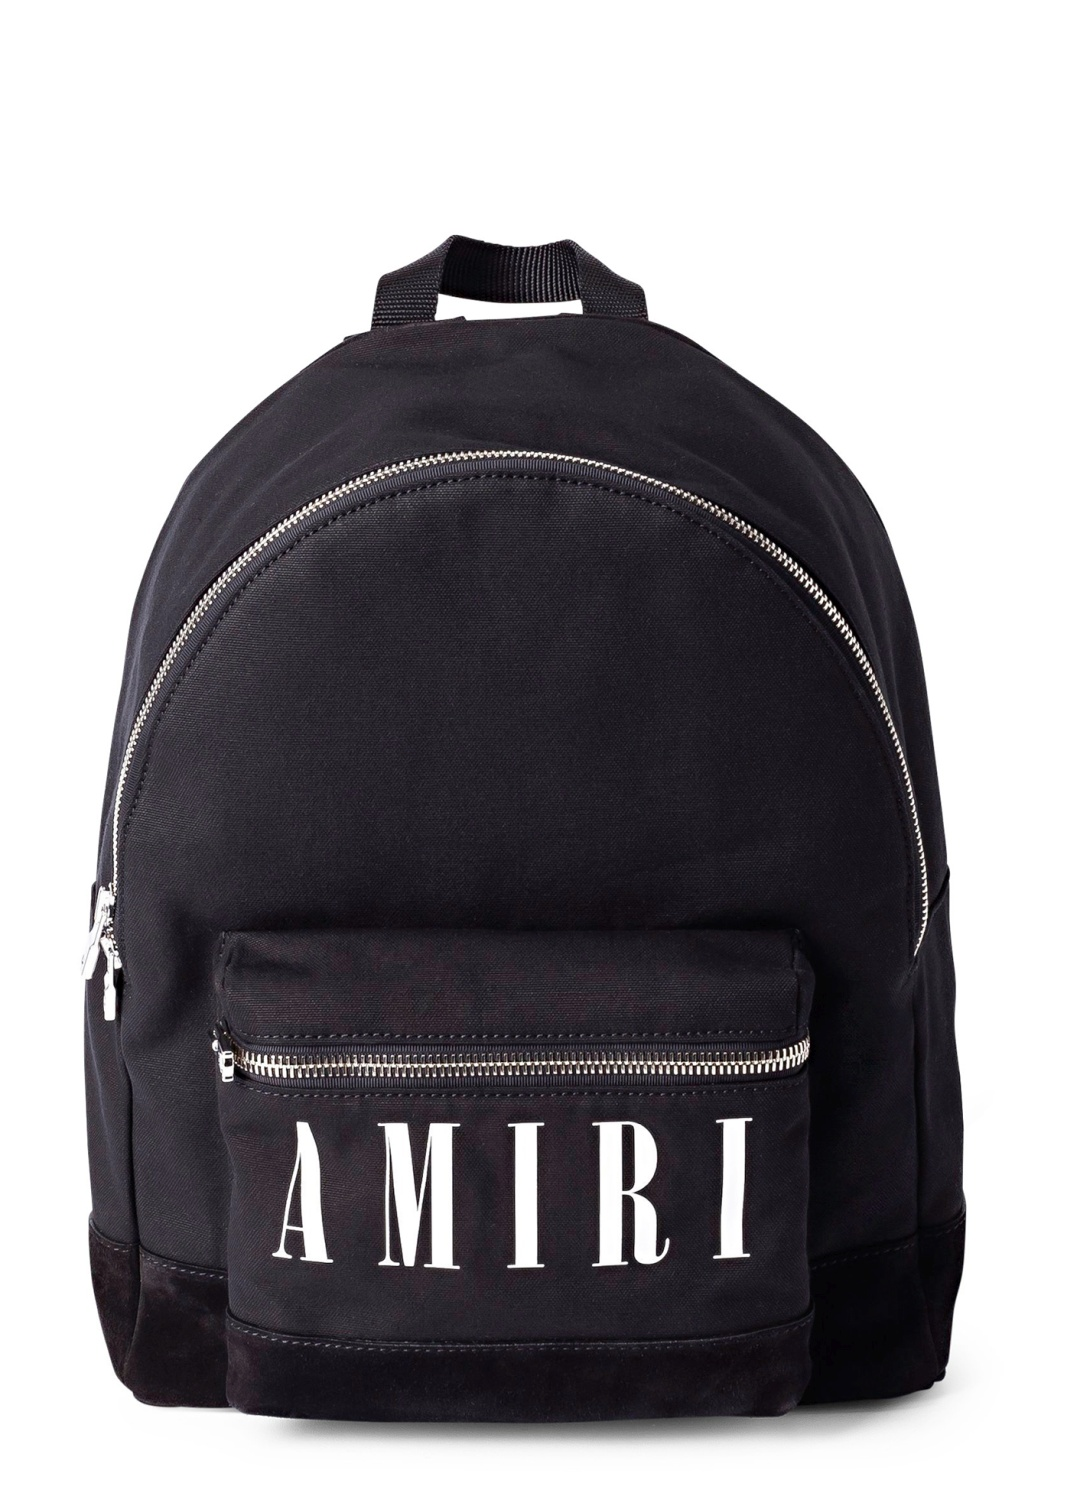 CORE LOGO CANVS/SUEDE BACKPACK image number 0